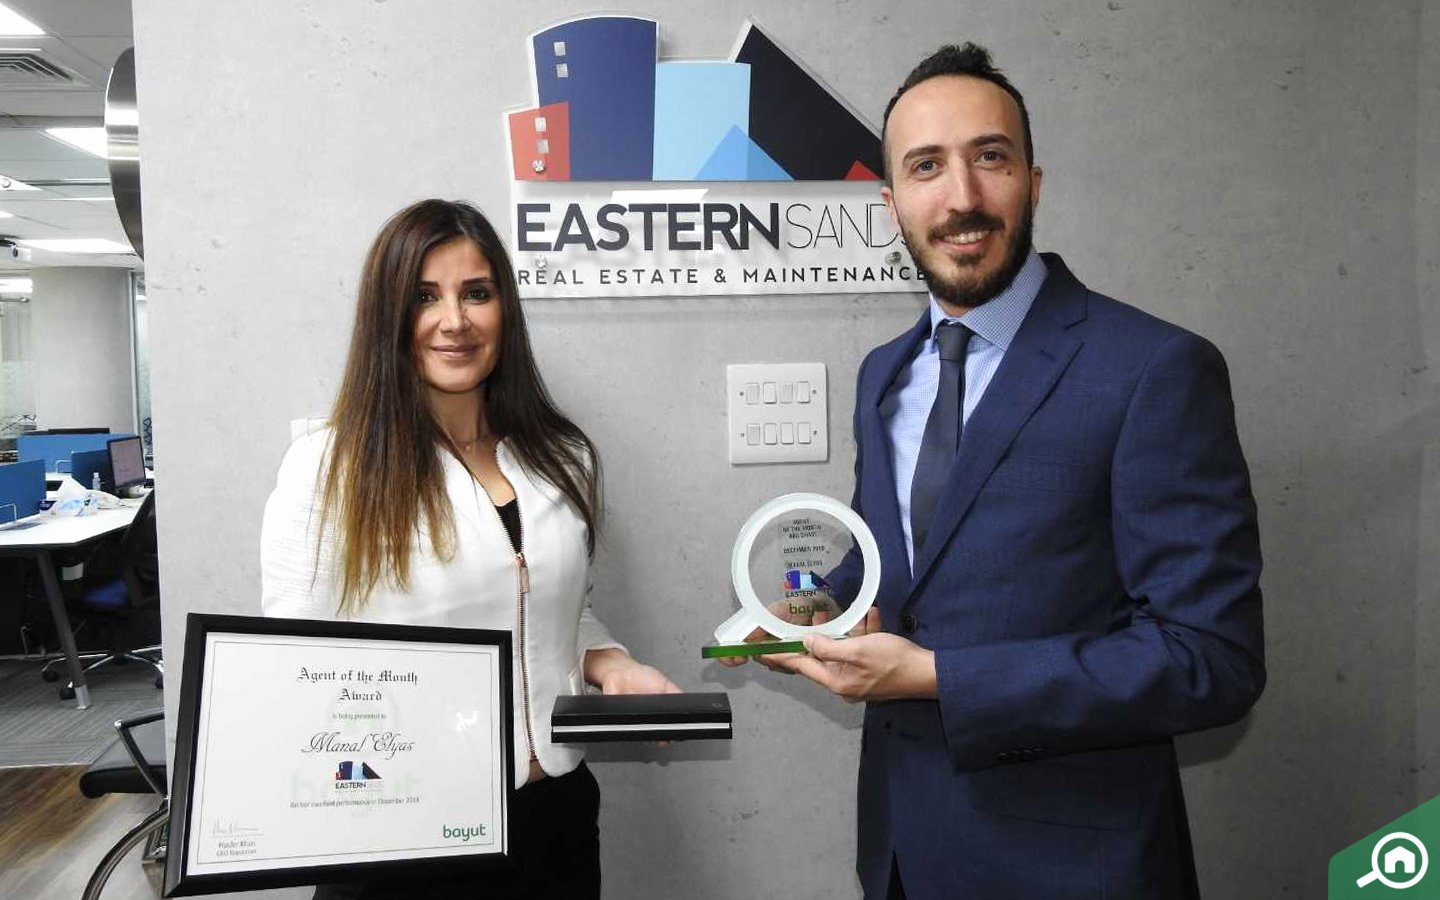 Salesman Of the Month Award Awesome Eastern Sands Real Estate Wins Bayut Award for Dec 18